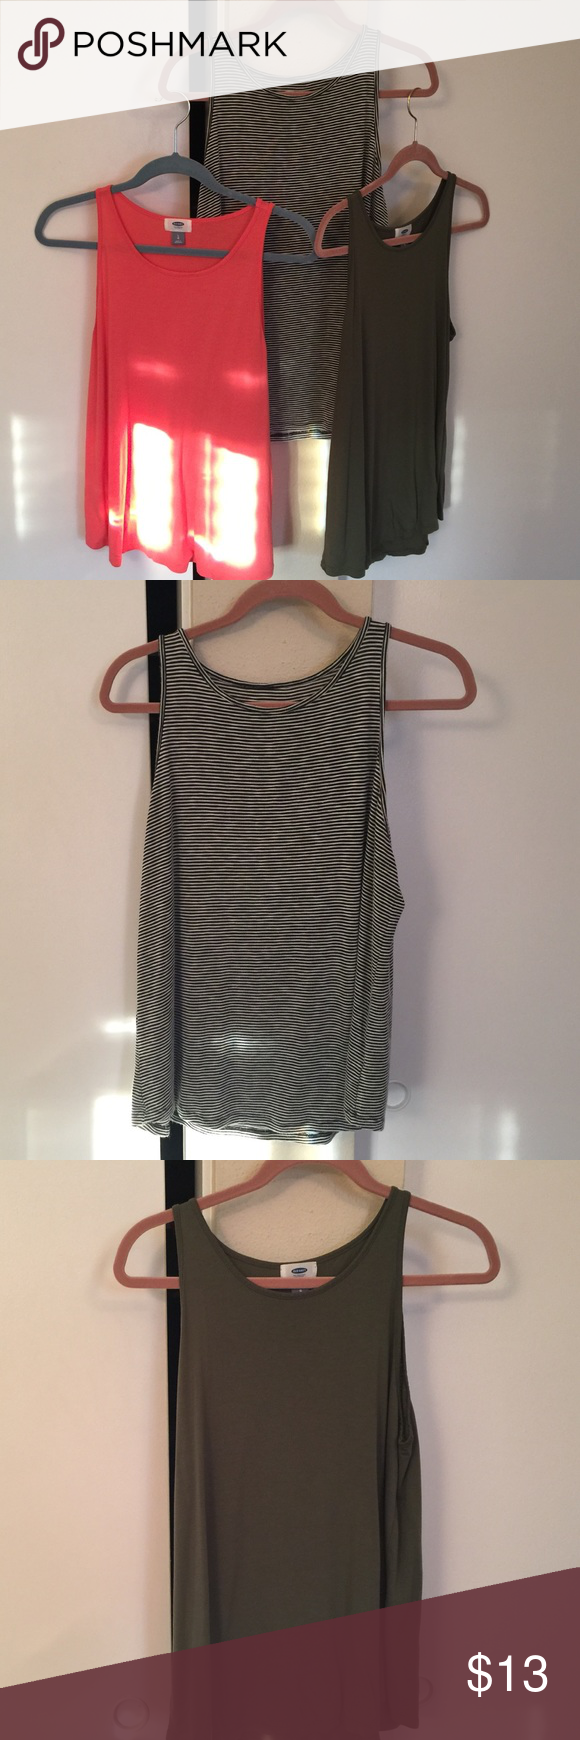 Old Navy tank top 3 pack Old Navy 3 pack tank tops- size large. Olive-green, peach, & black/white striped. All size large. The striped tank is a stretchy material. All very comfortable & breathable. Old Navy Tops Tank Tops